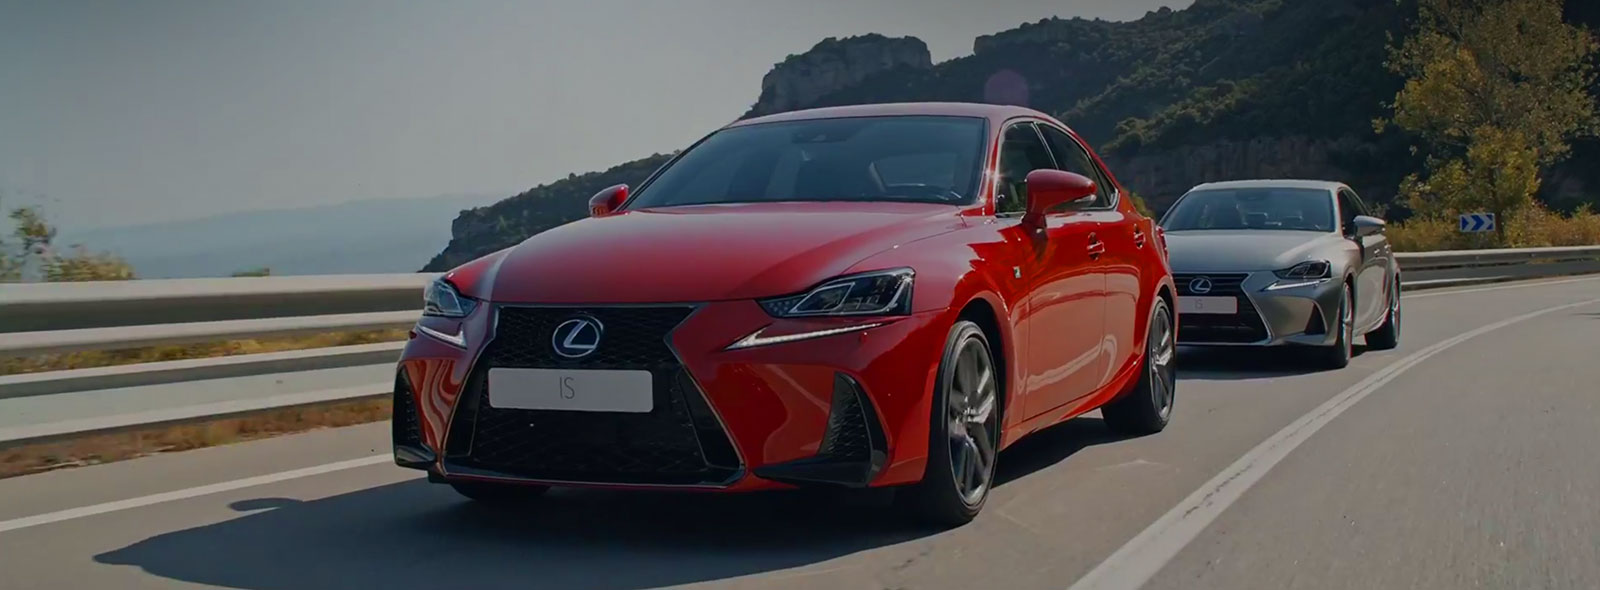 2017 lexus is gallery video